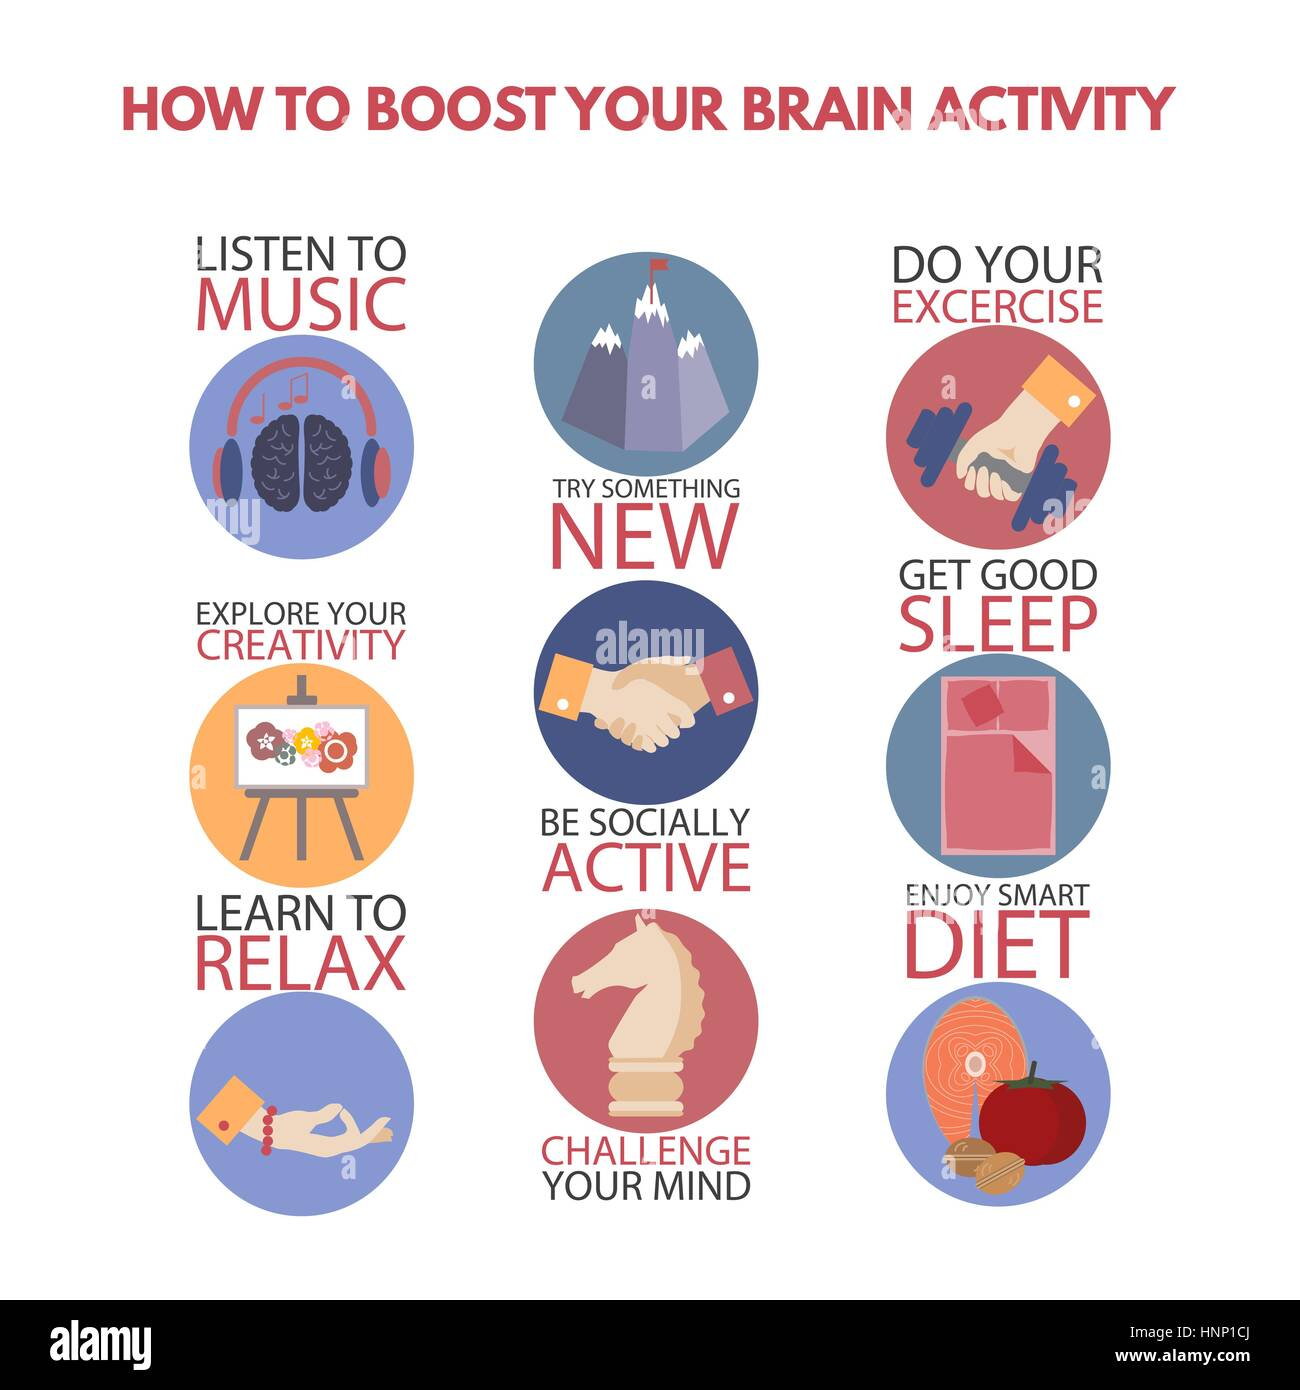 Modern flat style infographic on boosting brain energy.  - Stock Image